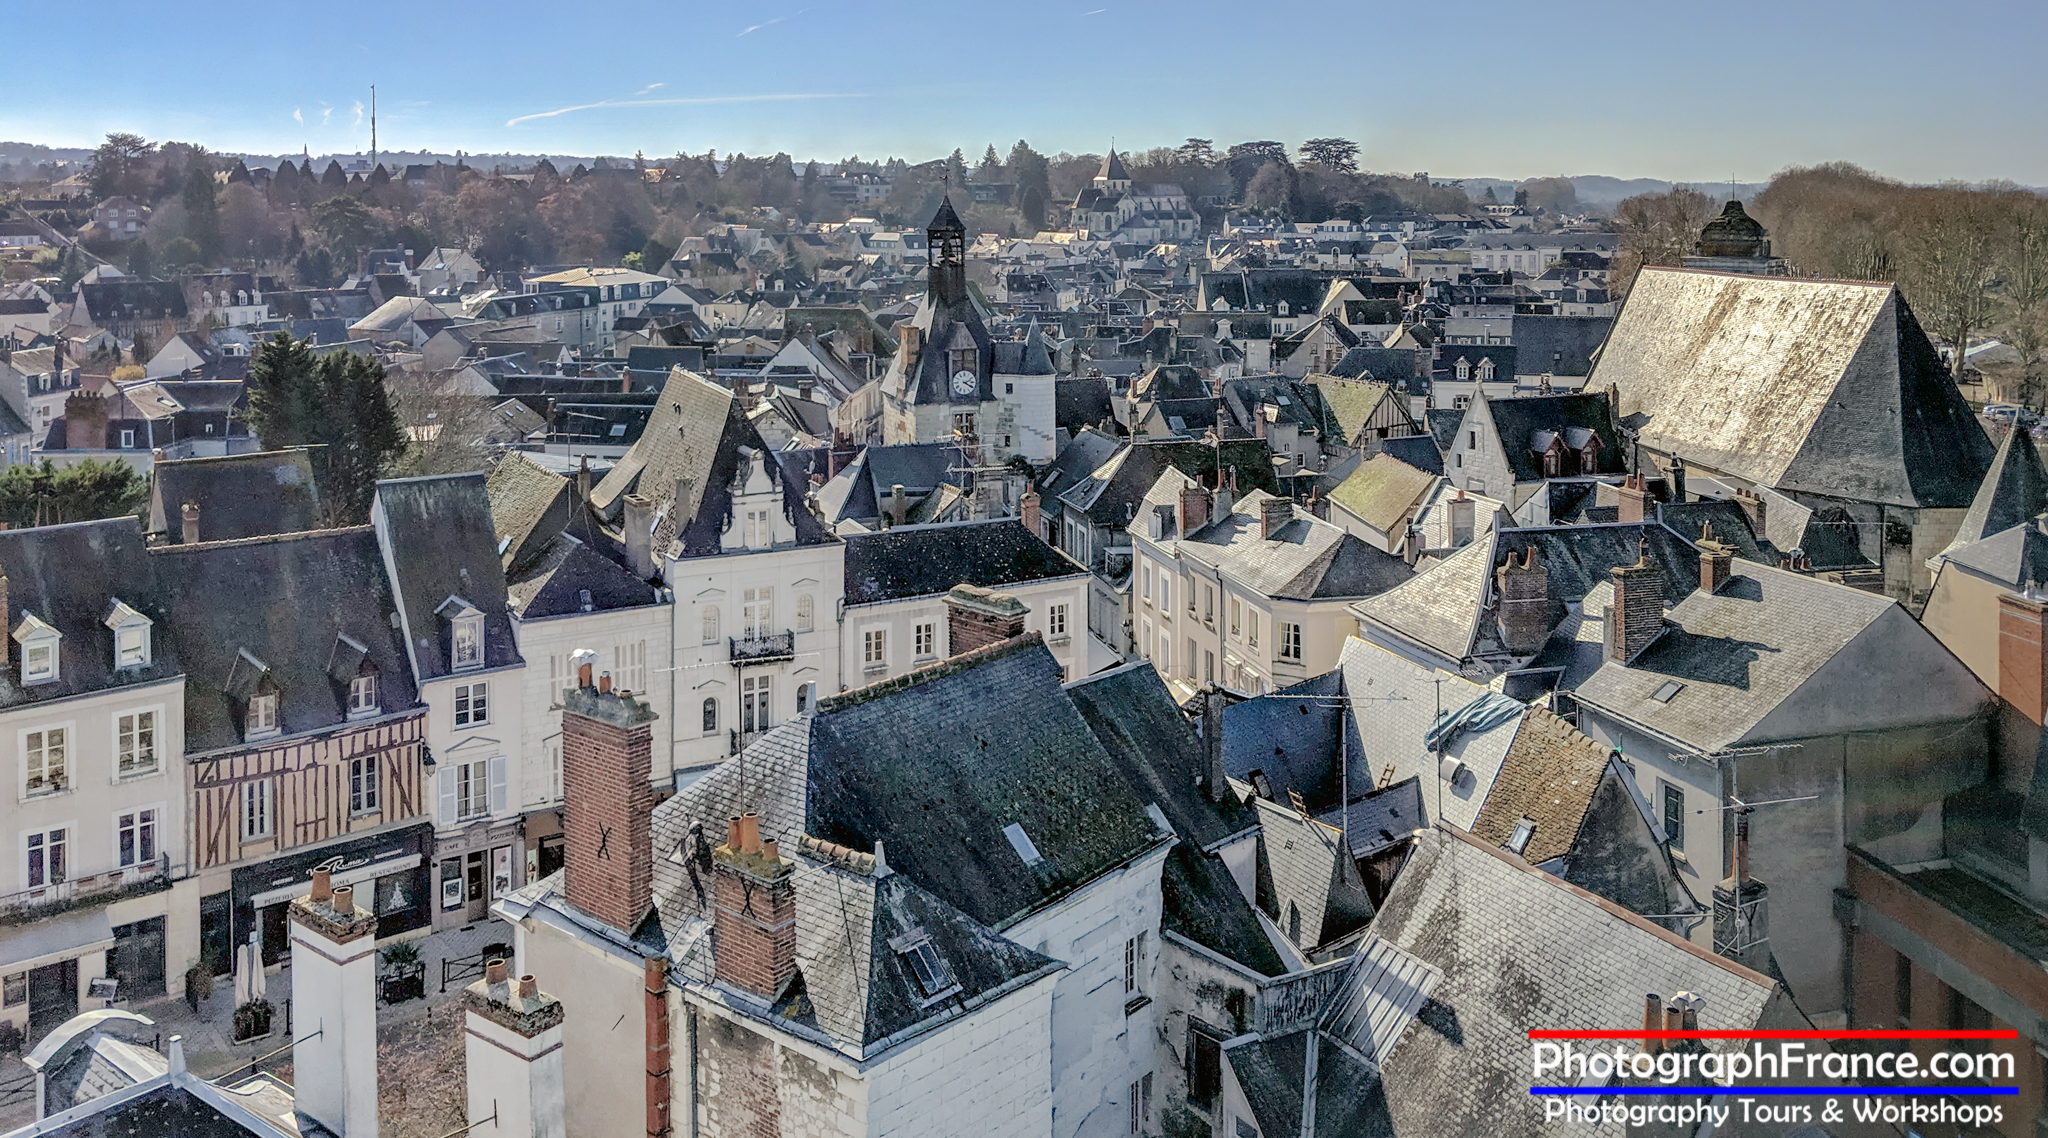 The town Amboise viewed from Château Royal d'Amboise